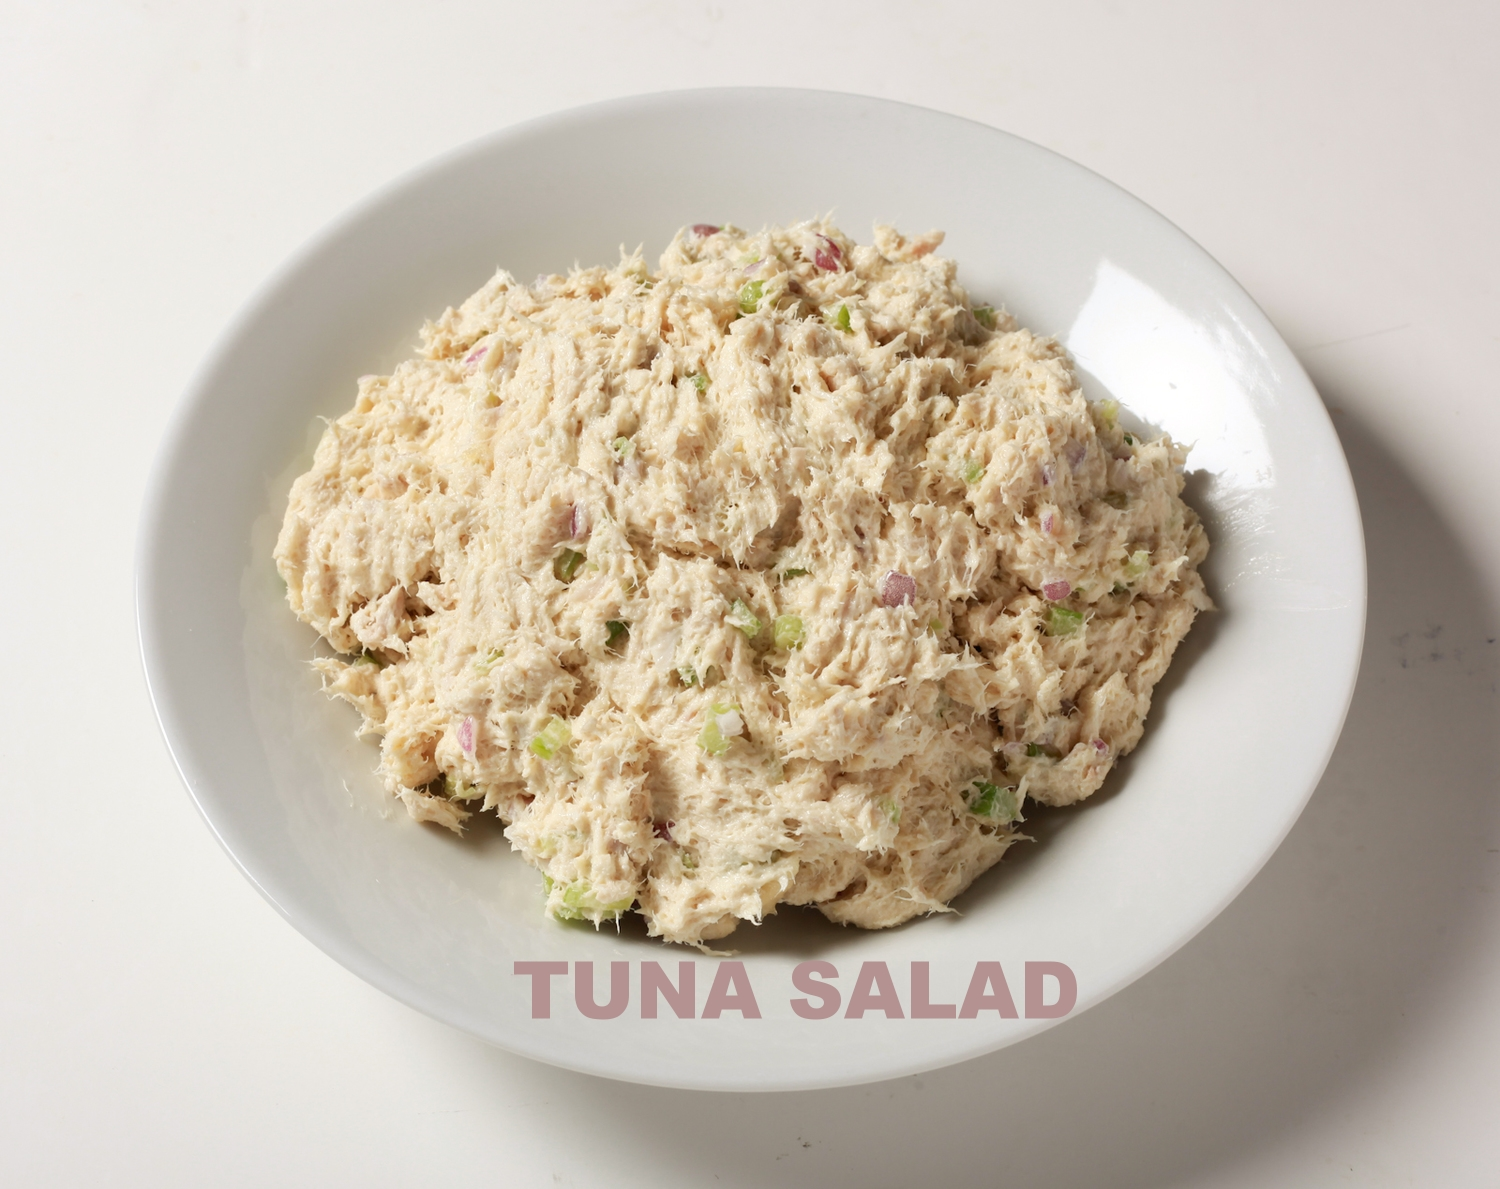 SanFranciscoFishCo,TunaSalad,1lb (3 of 3).jpg